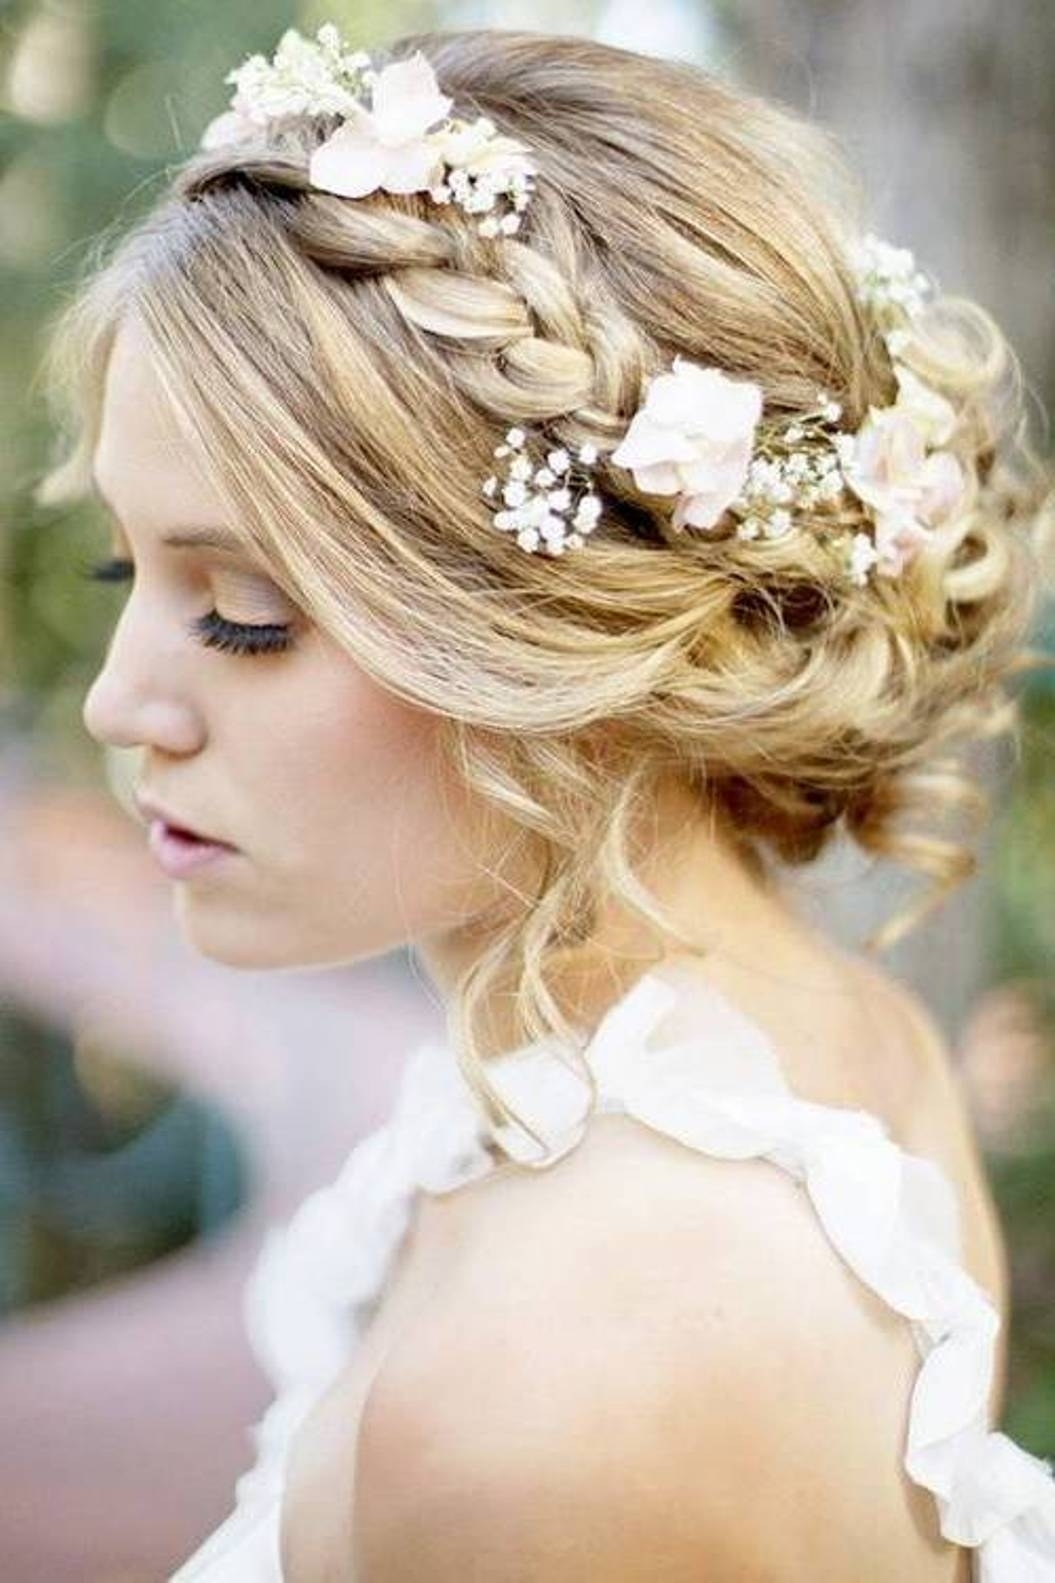 Wedding hairstyle up with veil long hair wedding hairstyles with wedding hairstyle up with veil long hair wedding hairstyles with tiara best hairstyle 2017 junglespirit Image collections